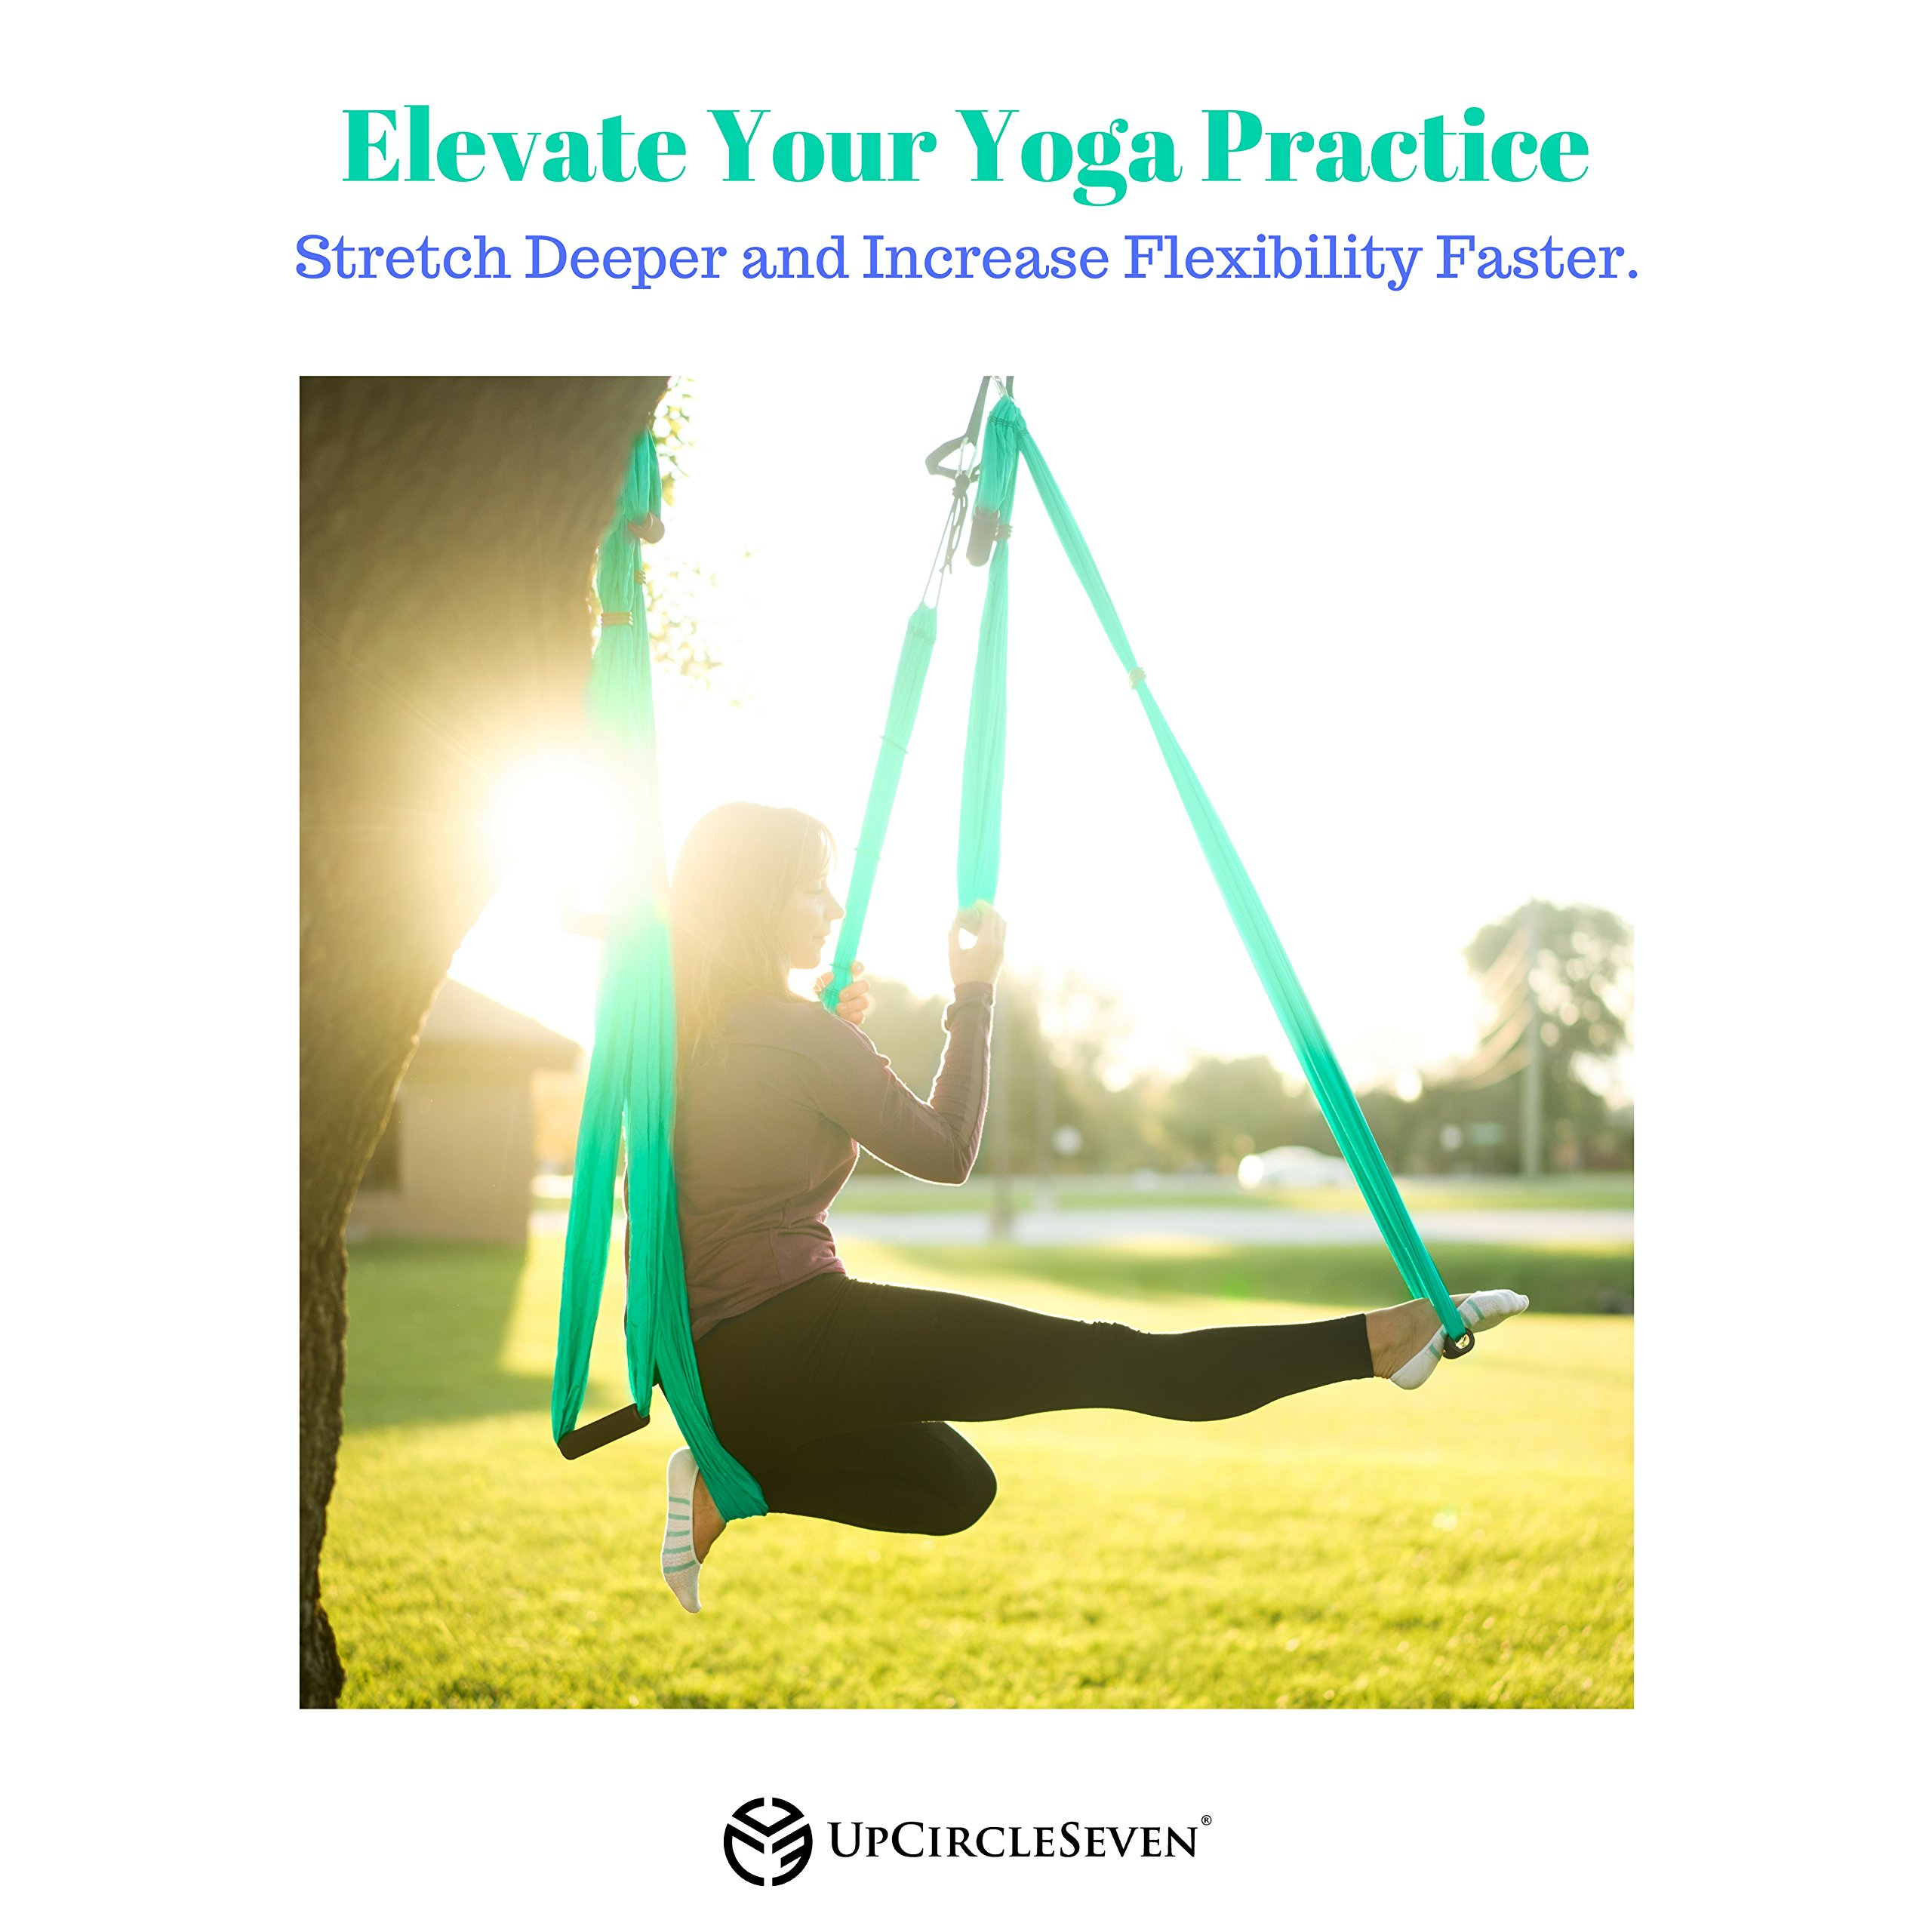 Aerial Yoga Swing - Ultra Strong Antigravity Yoga Hammock/Trapeze/Sling for Air Yoga Inversion Exercises - 2 Extensions Straps Included (Turquoise) by UpCircleSeven (Image #4)